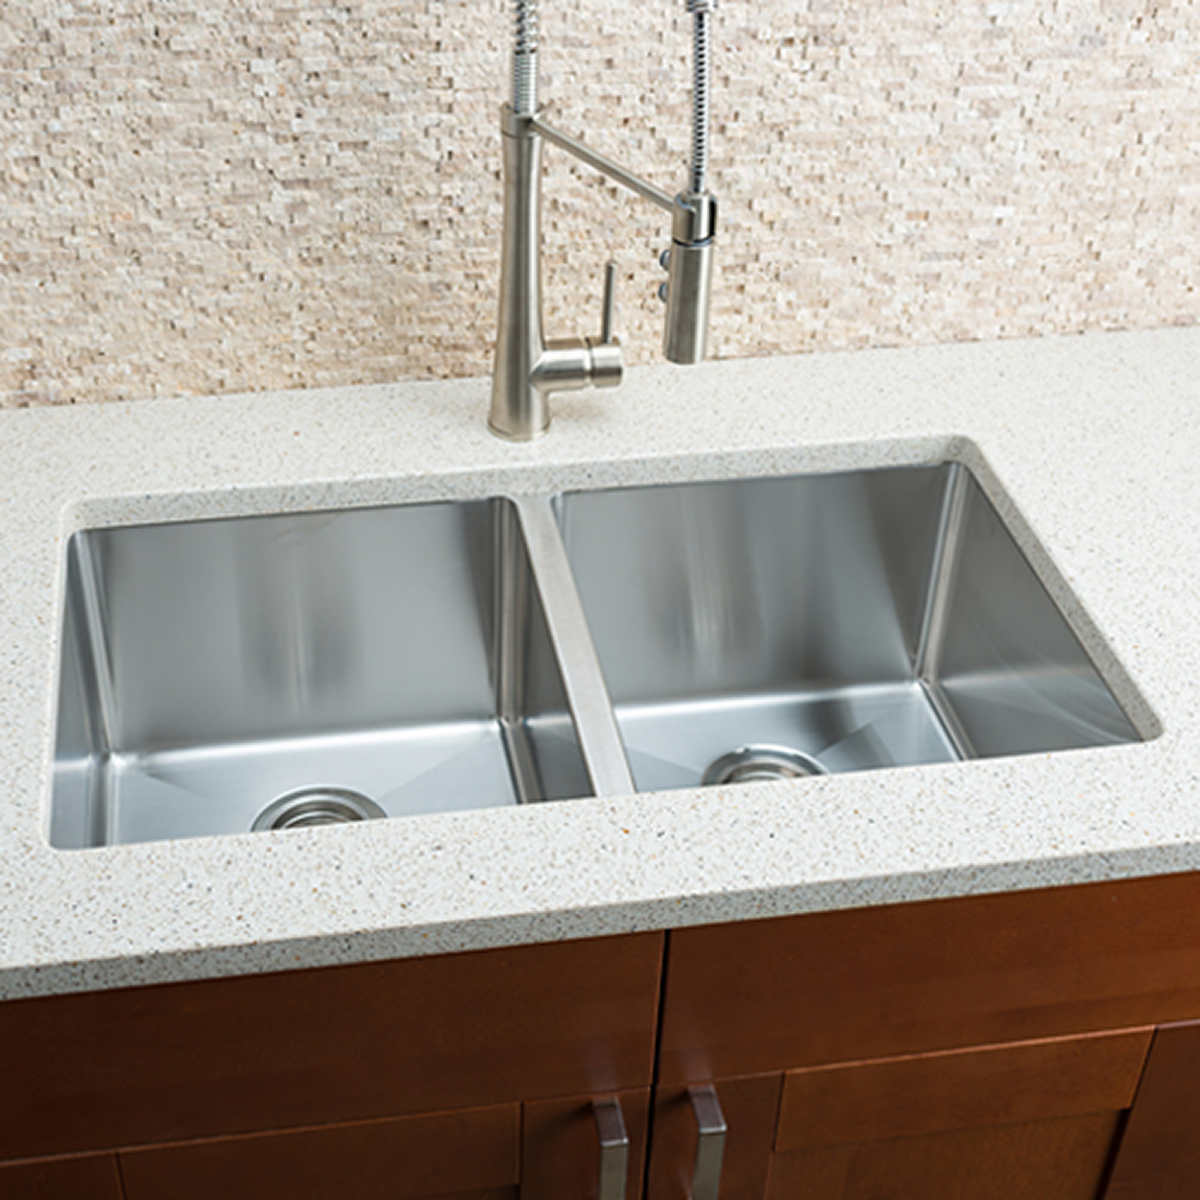 Hahn Chef Series Handmade Extra Large Equal Double Bowl Sink product hahn kitchen sinks Click to Zoom